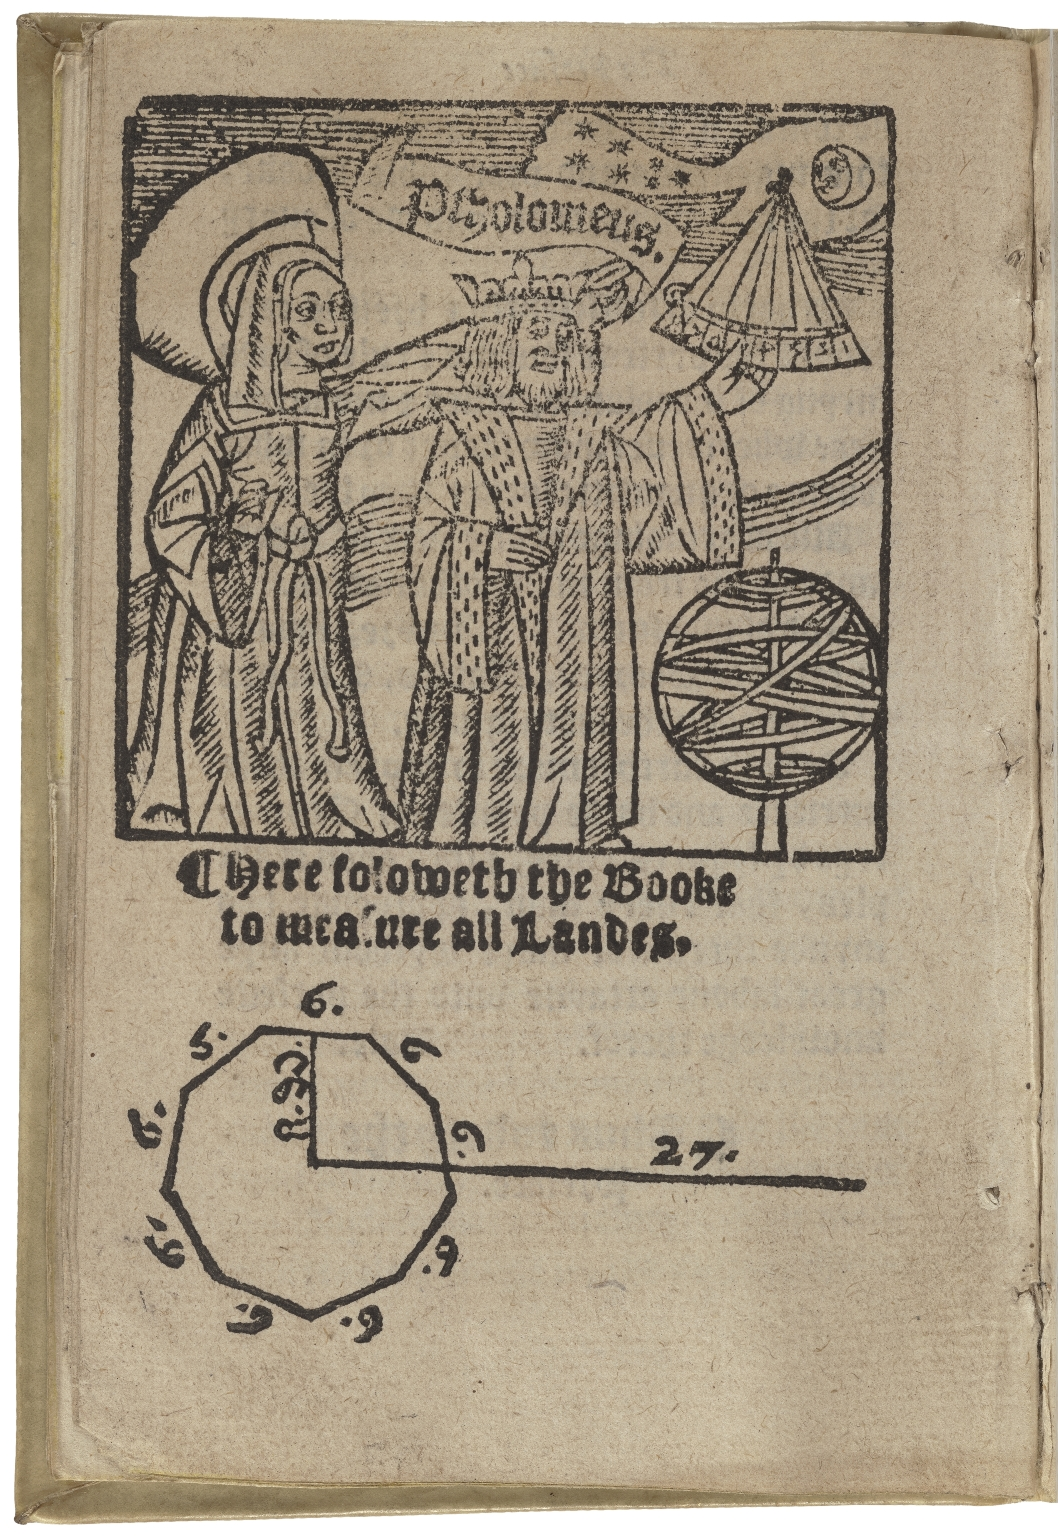 The boke of measuryng of landeas well of woodland as plowland, & pasture in the feelde: & to compt the true nombre of acres of the same. Newly corrected, & compiled by Sir Richarde de Benese.